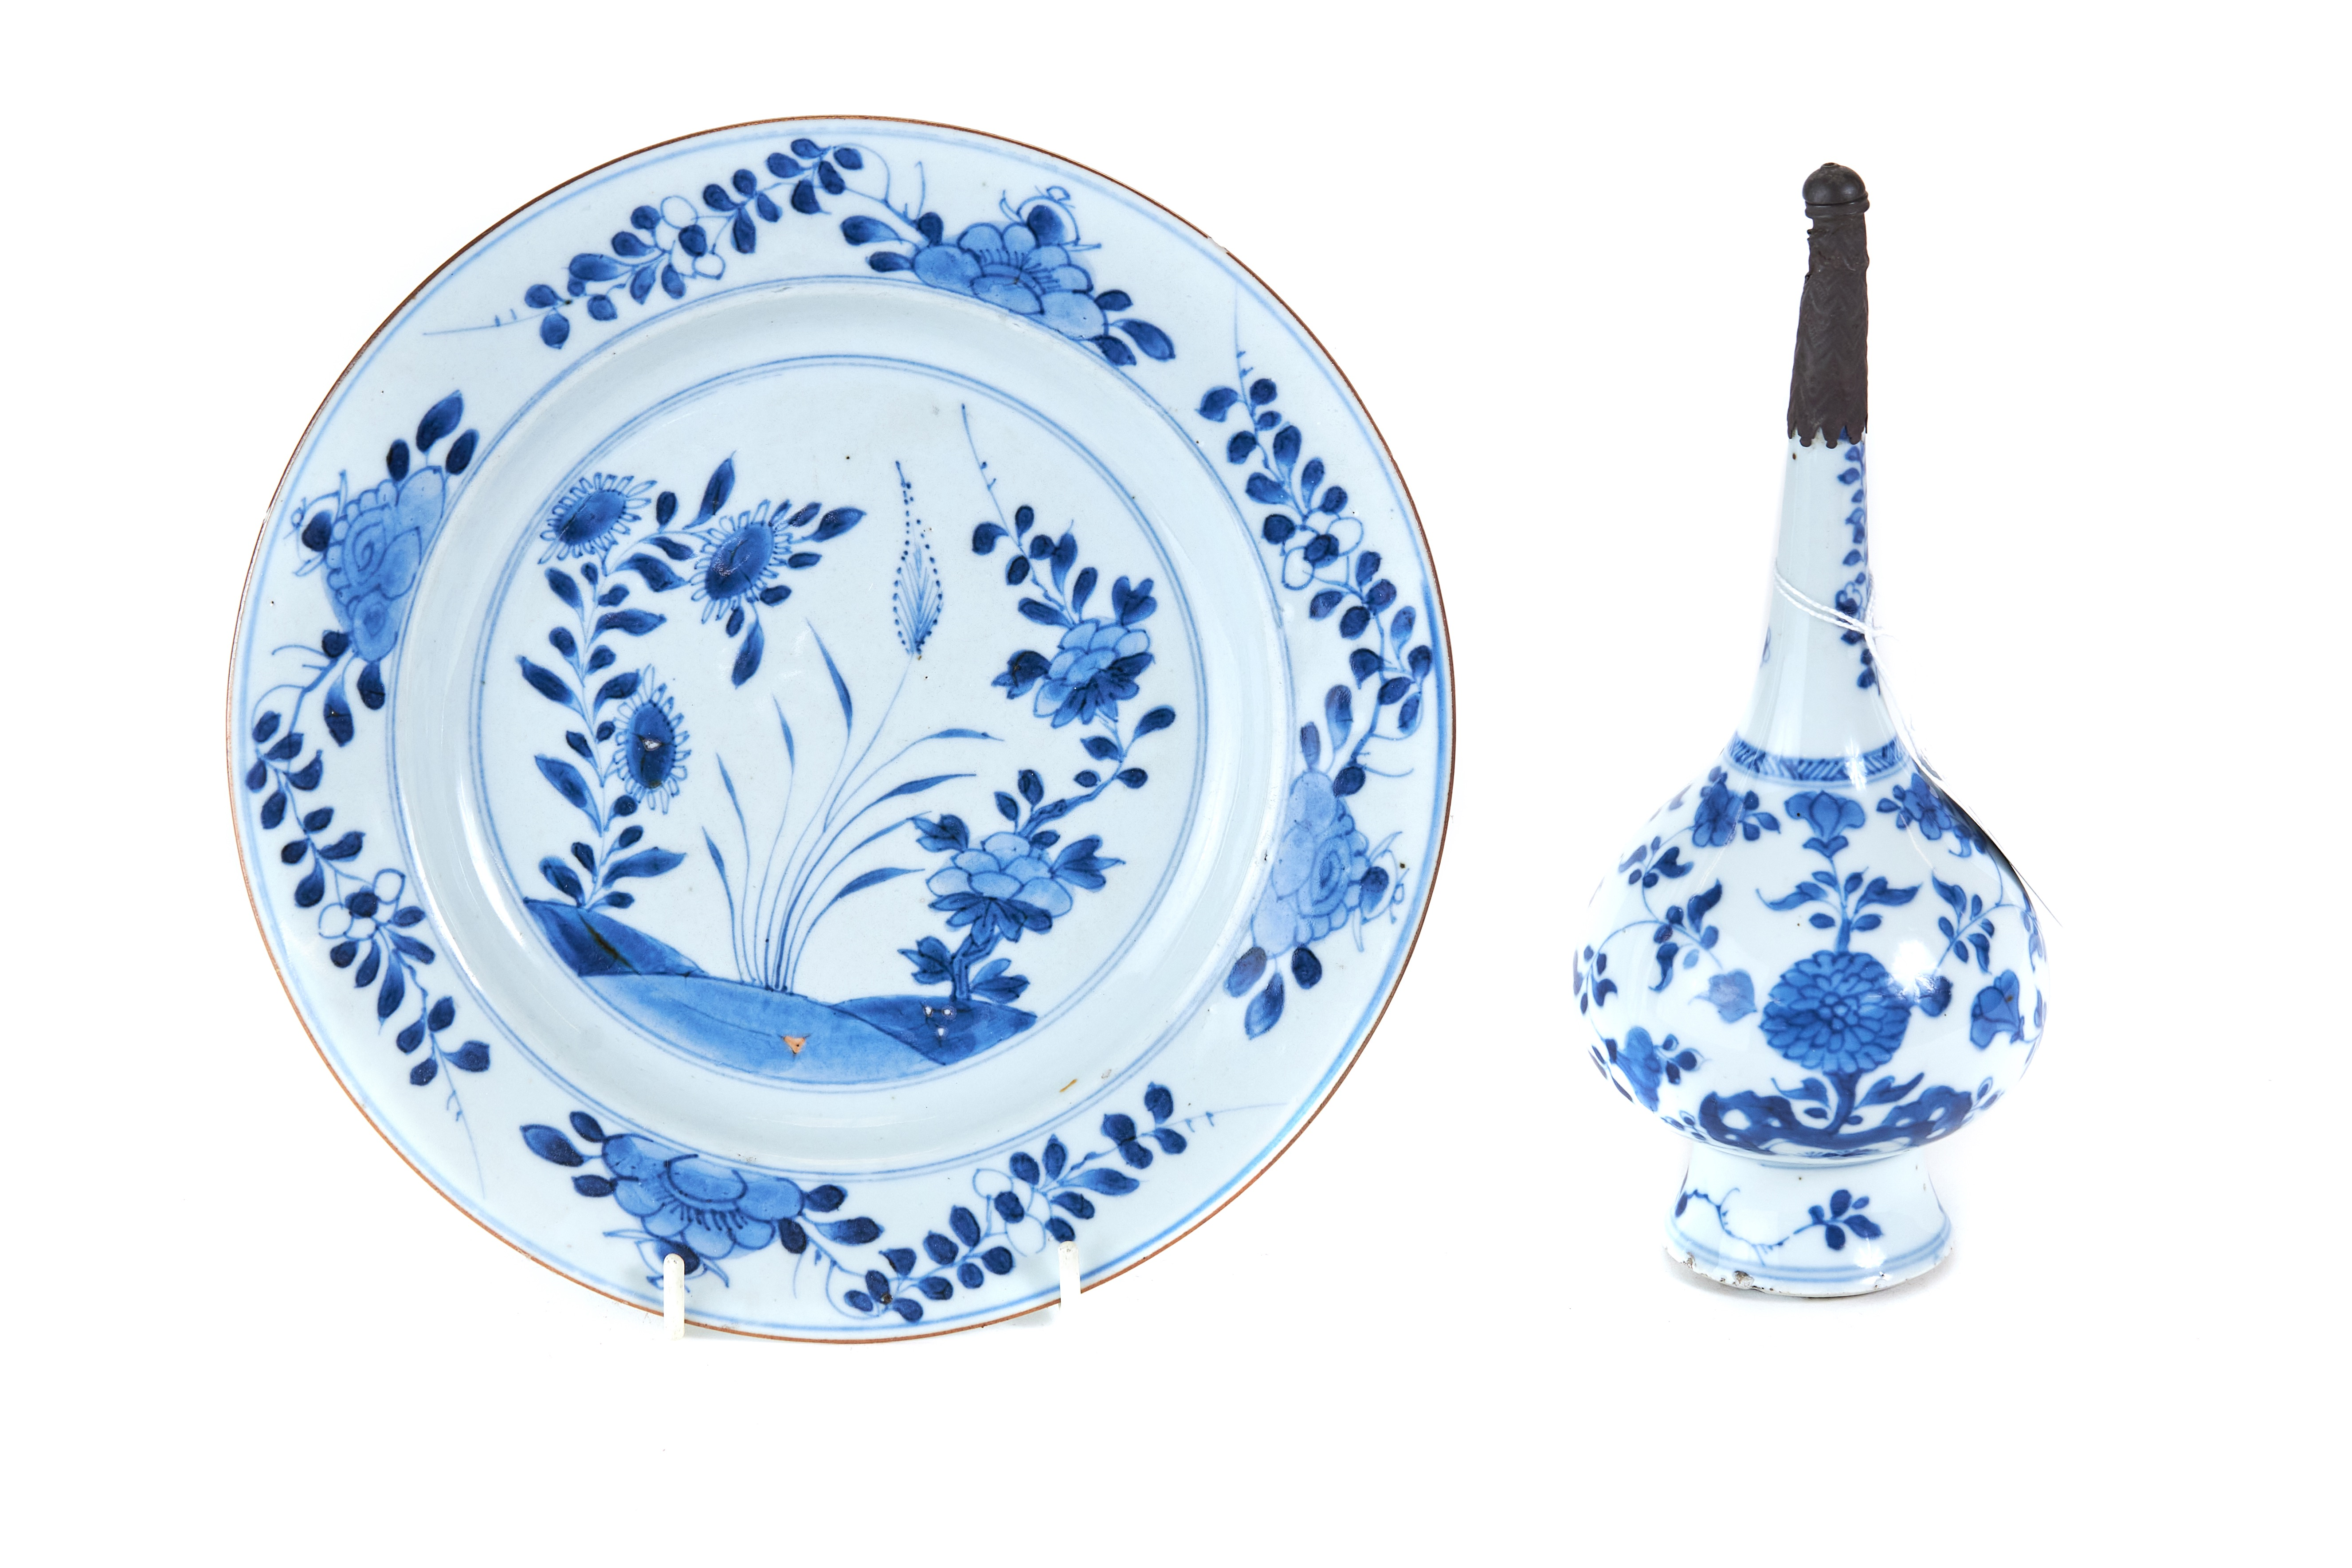 AN 18TH CENTURY CHINESE PORCELAIN ROSE WATER SPRINKLER decorated in underglaze blue with meandering